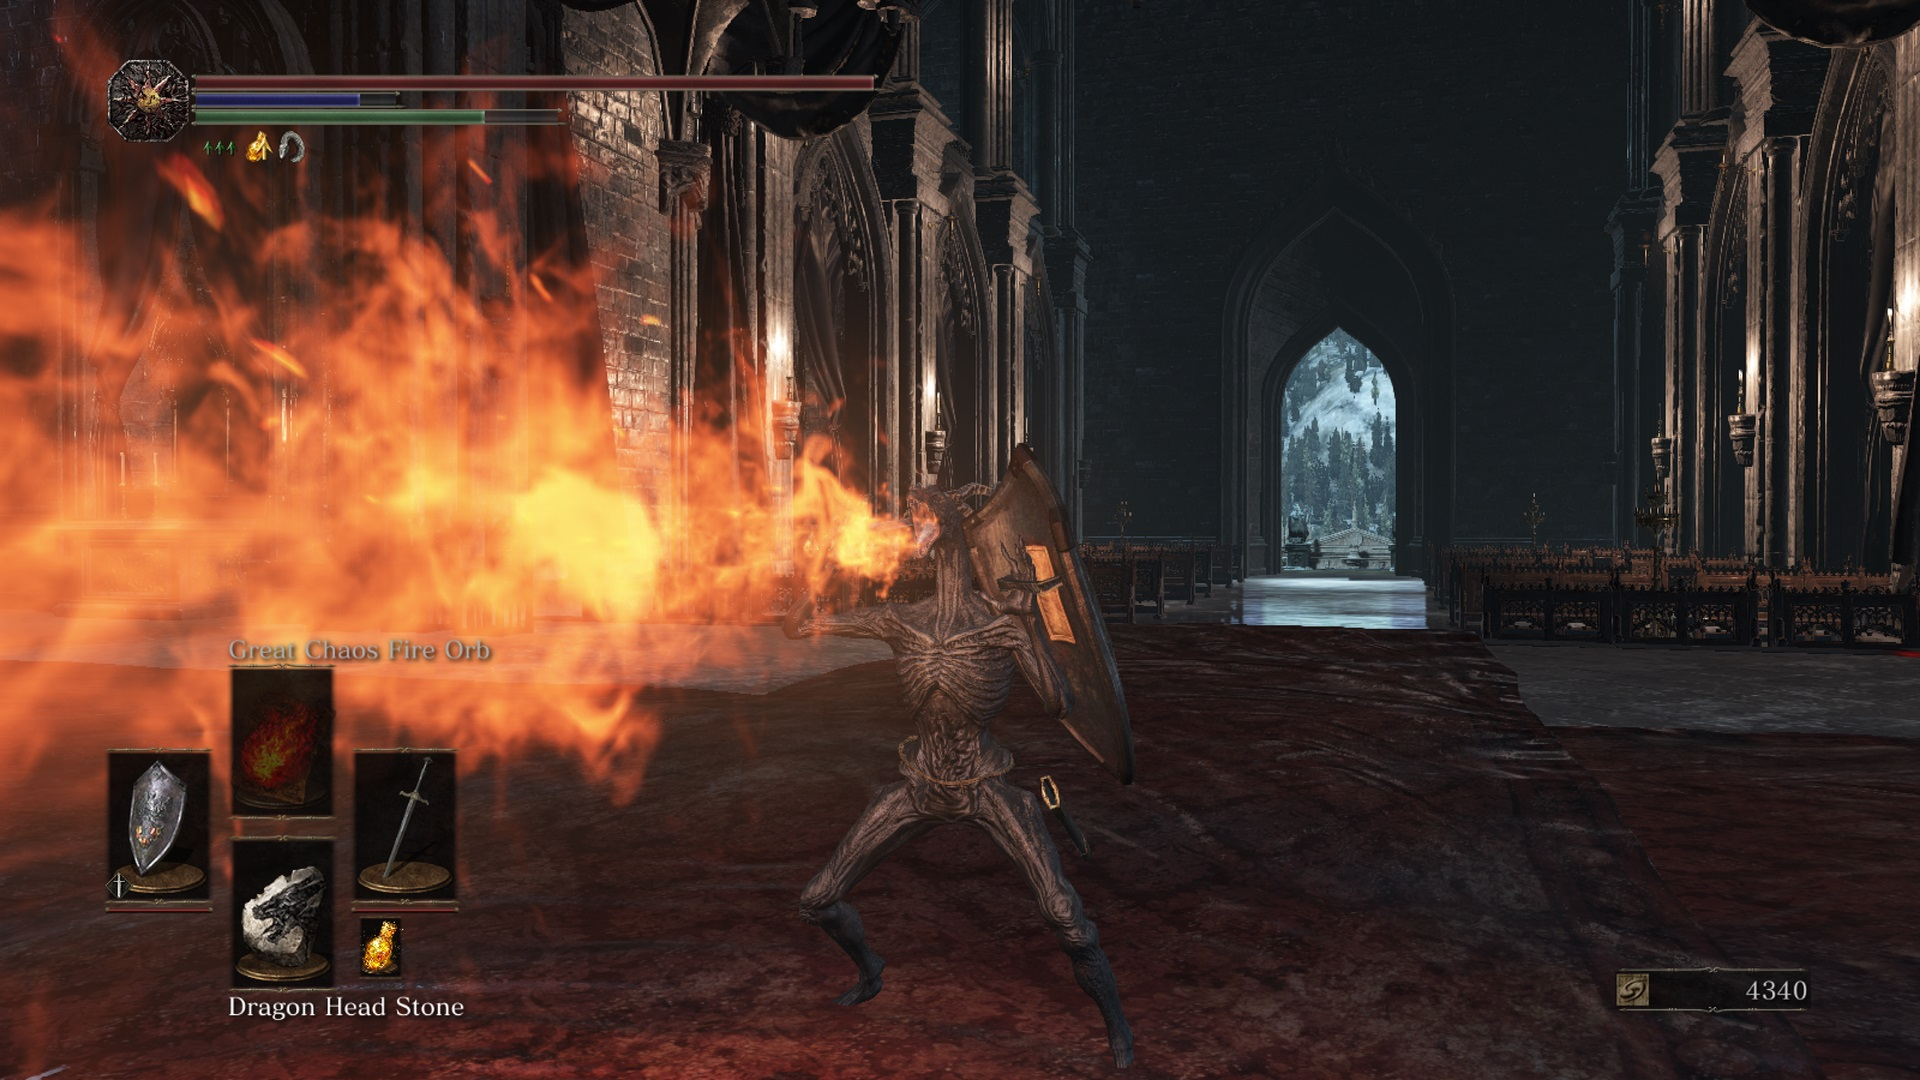 Dark Souls 3 How To Become A Dragon Usgamer The dragonslayer armour, controlled by the pilgrim butterfly, lost its master long ago, but still remembers their sporting hunts. dark souls 3 how to become a dragon